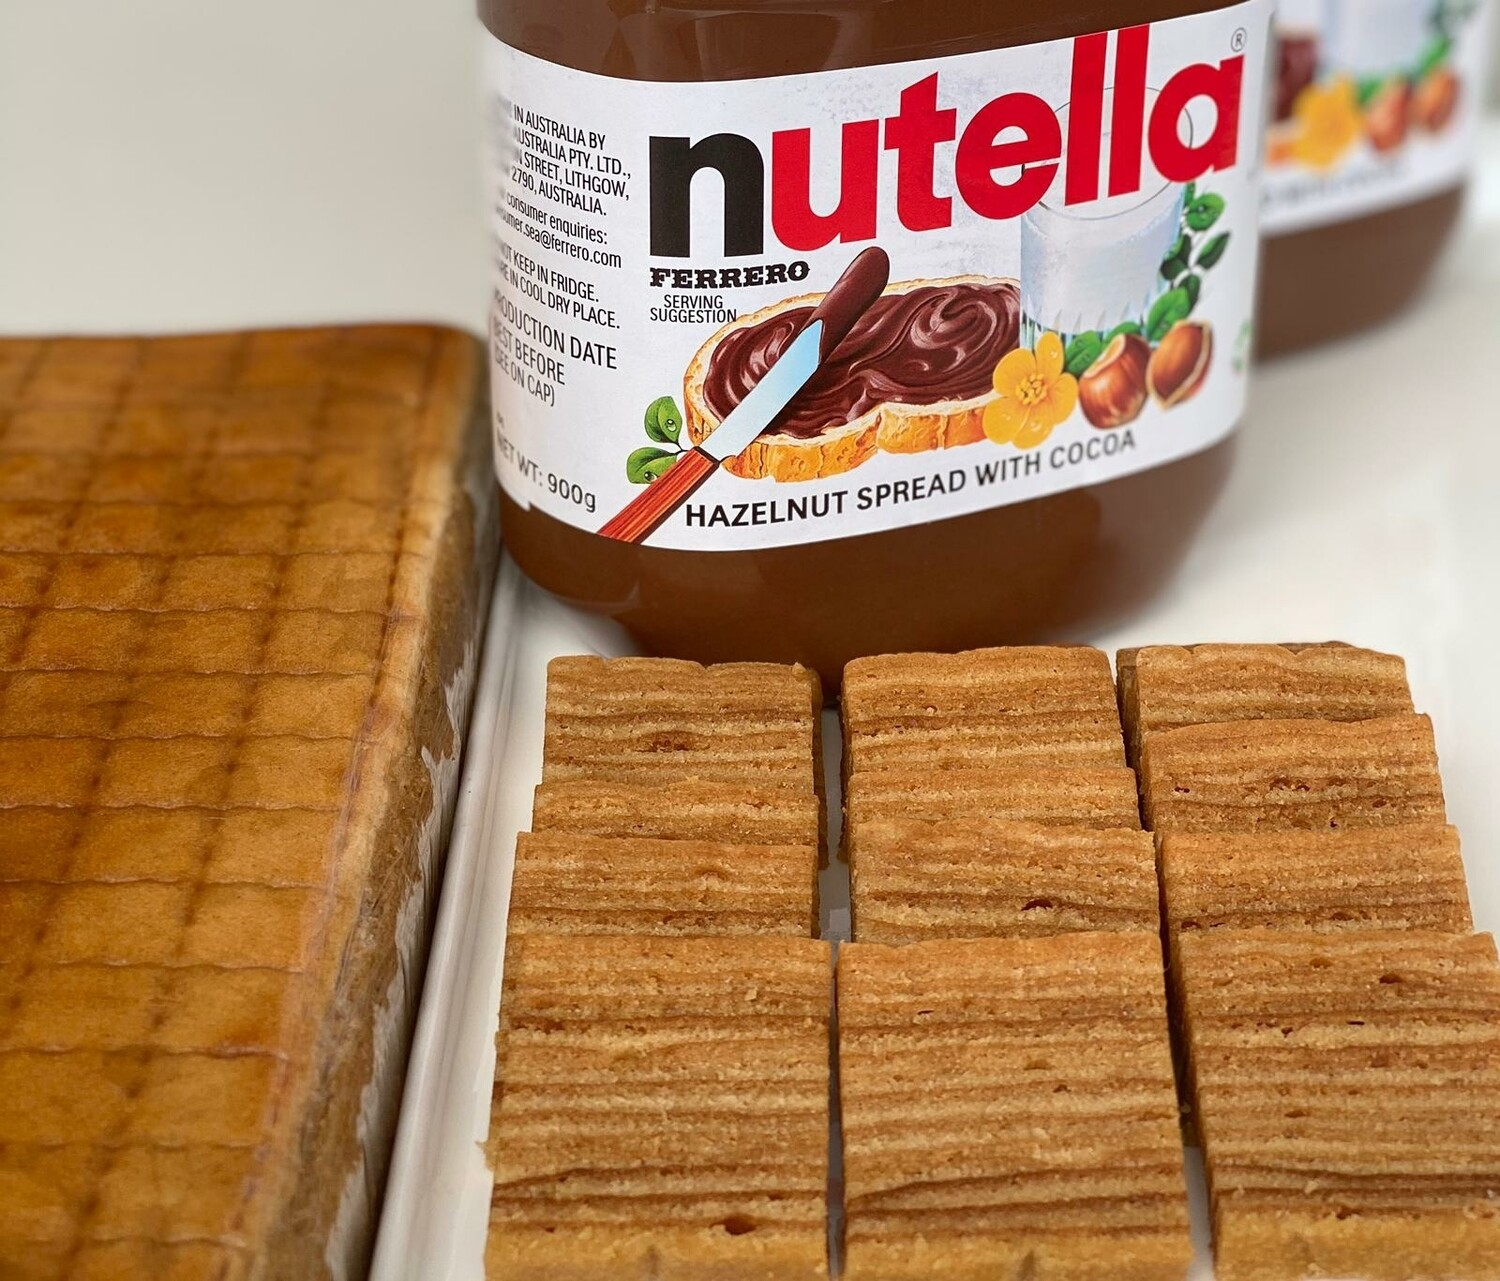 Lapis Nutella (approx 1.3kg, 7x10 inches)